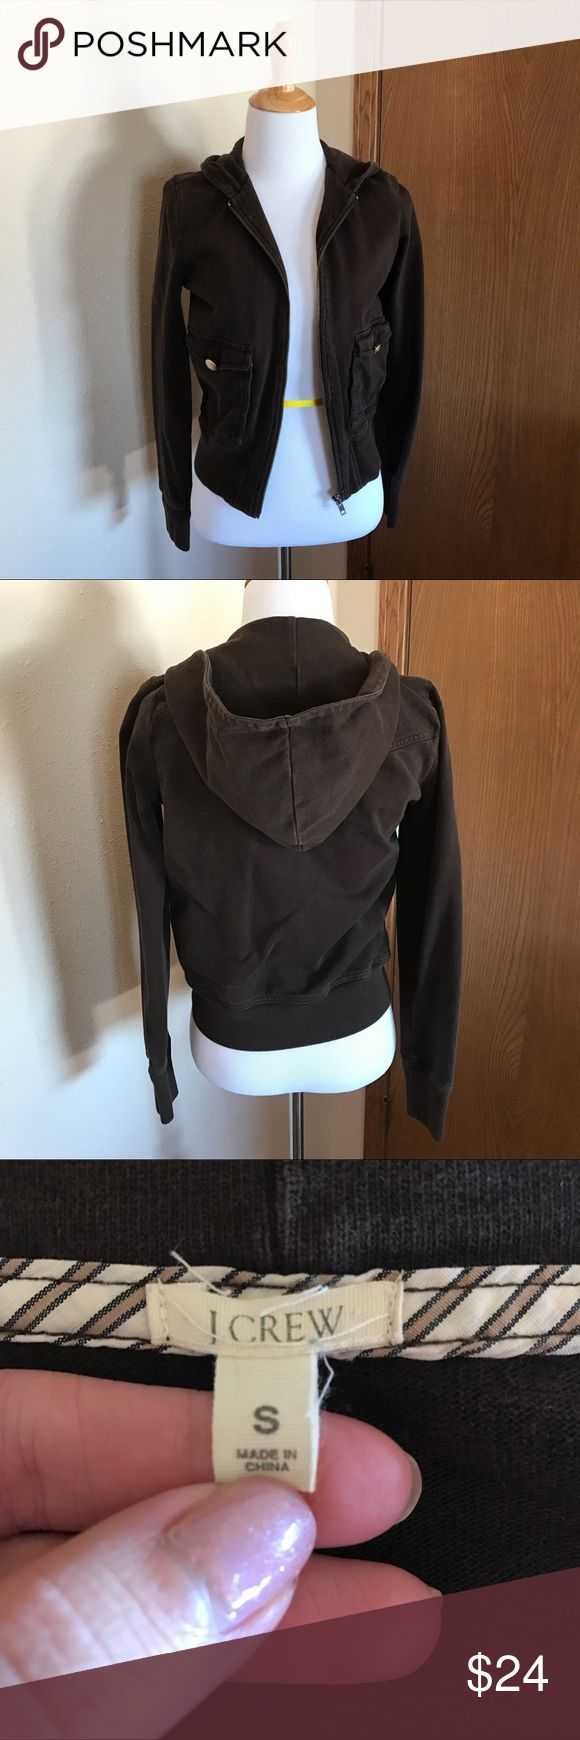 J. Crew Brown Hoodie Size Small Comfy and cozy classic brown zip up hoodie in good used condition! J. Crew Tops Sweatshirts & Hoodies